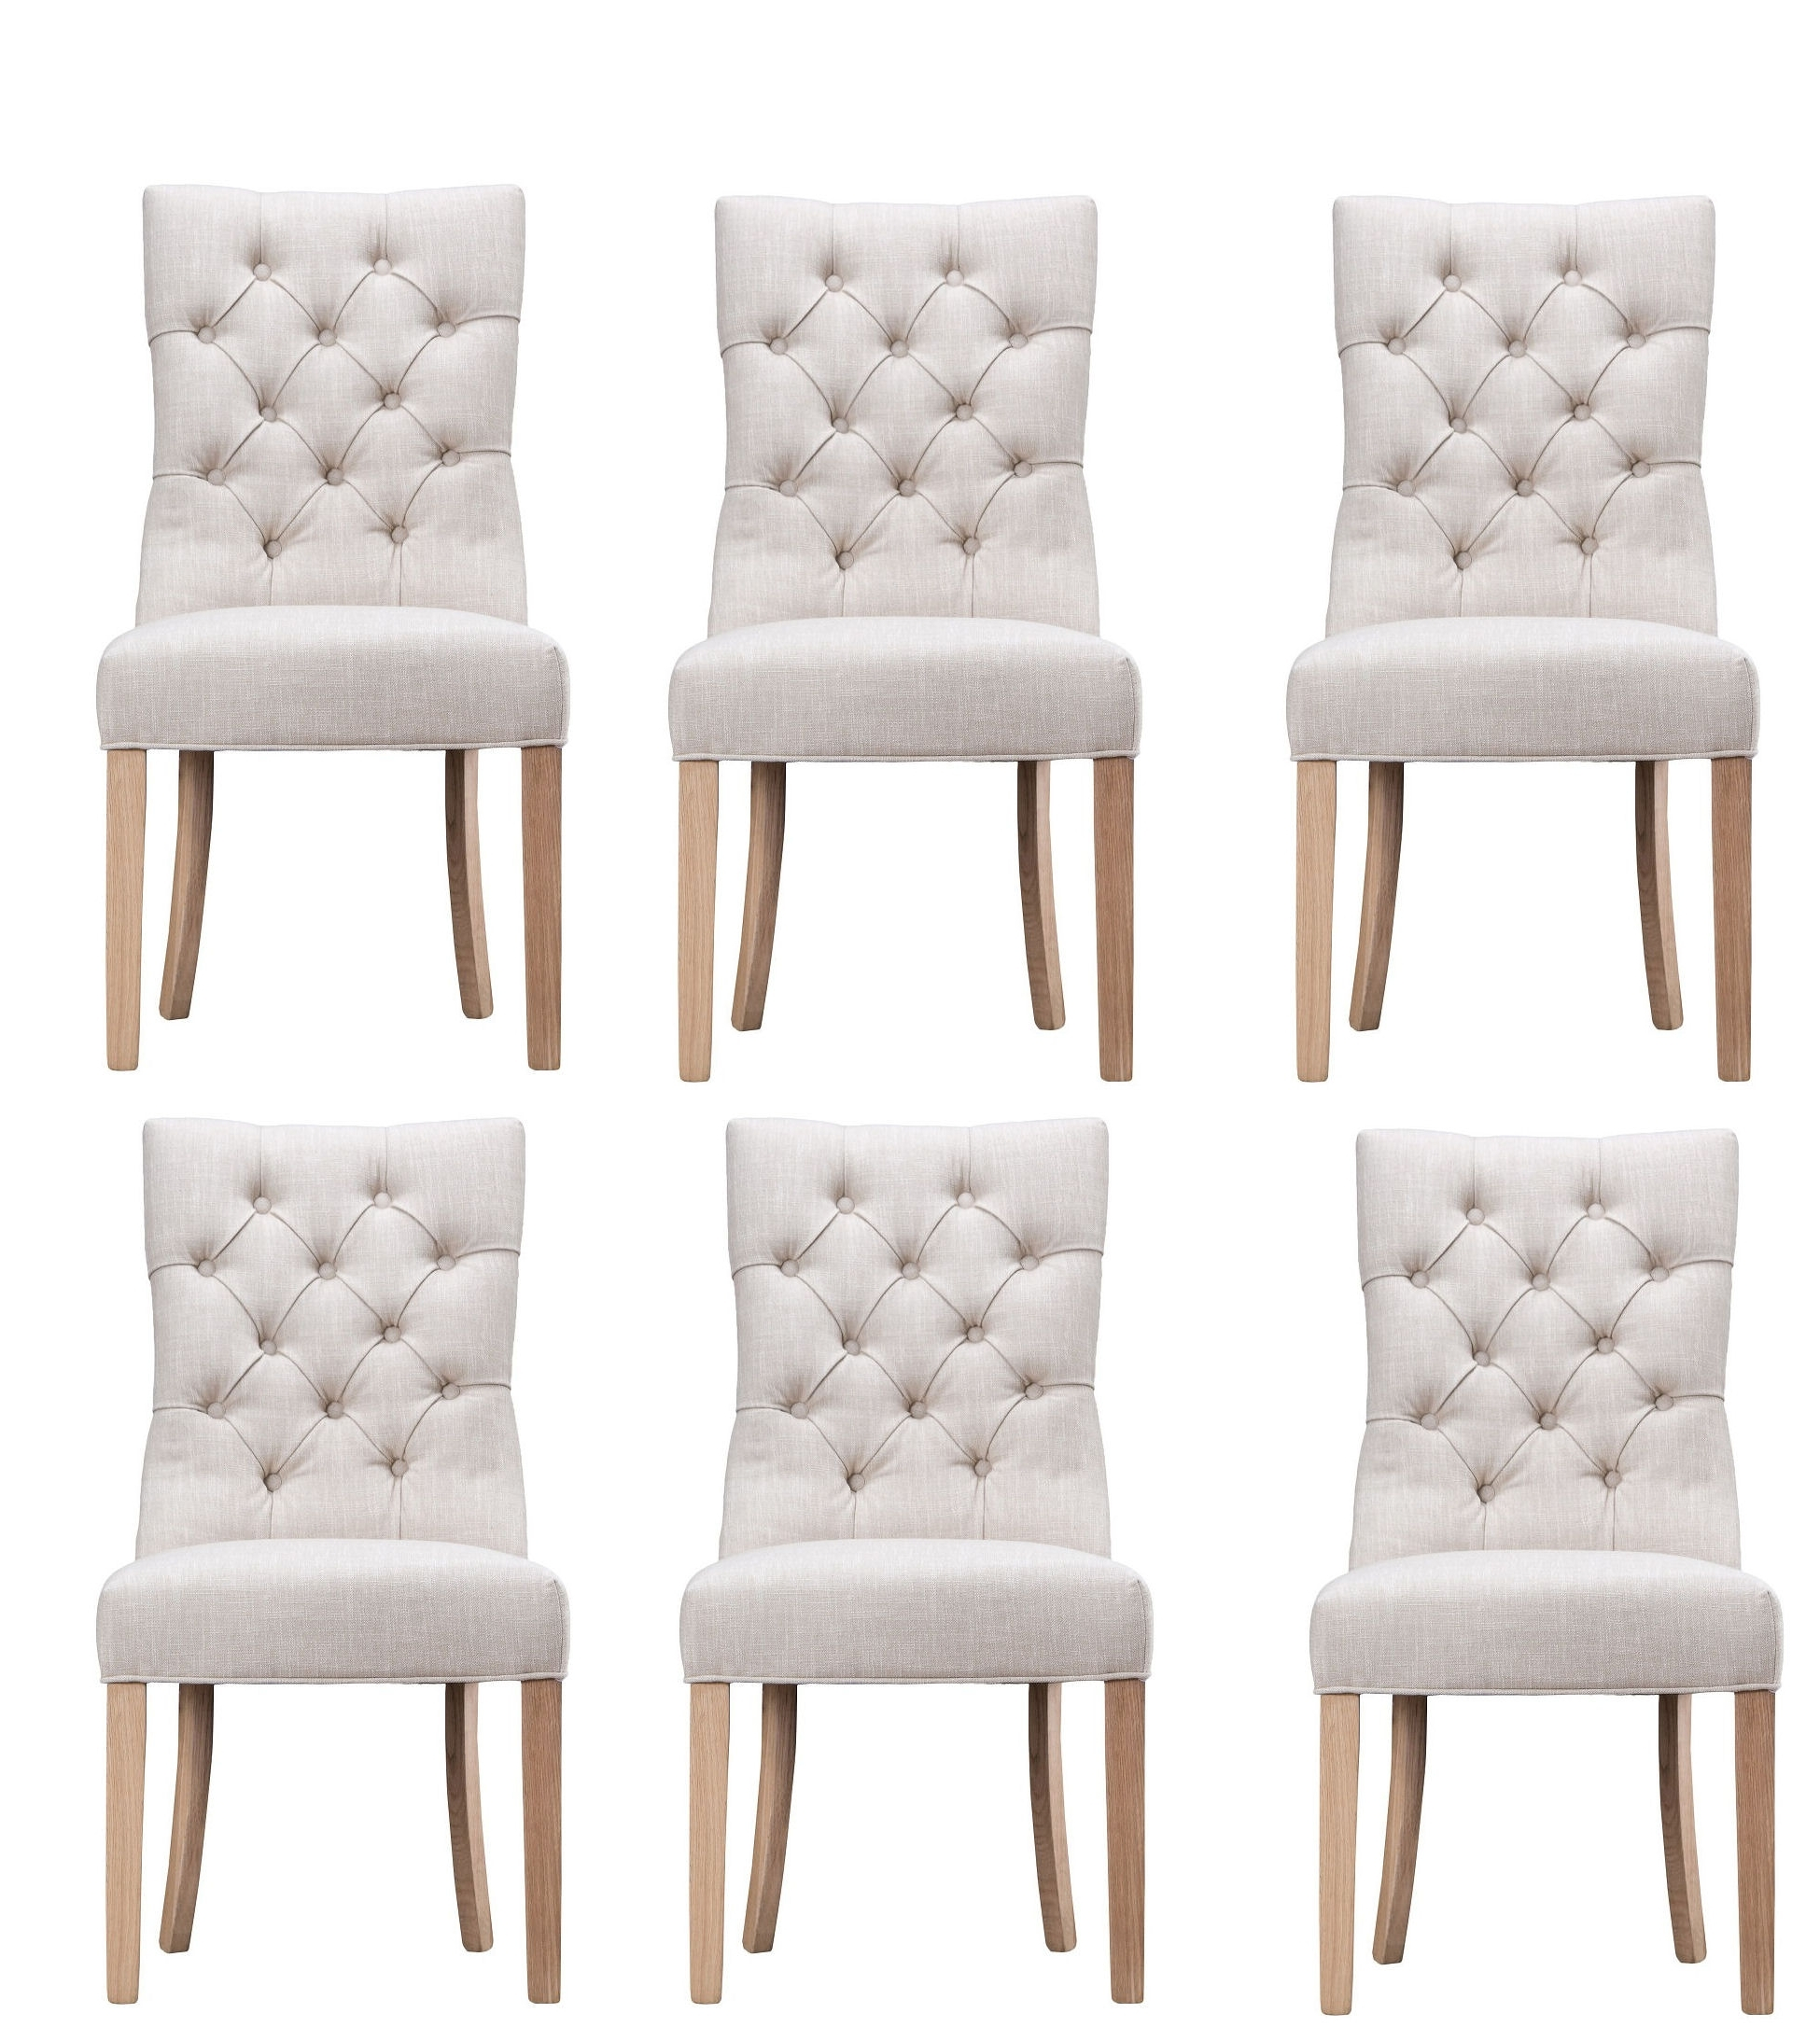 Button Back Dining Chairs In Current Curved Button Back Beige Upholstered Dining Chair – Azura Home Style (Gallery 9 of 25)